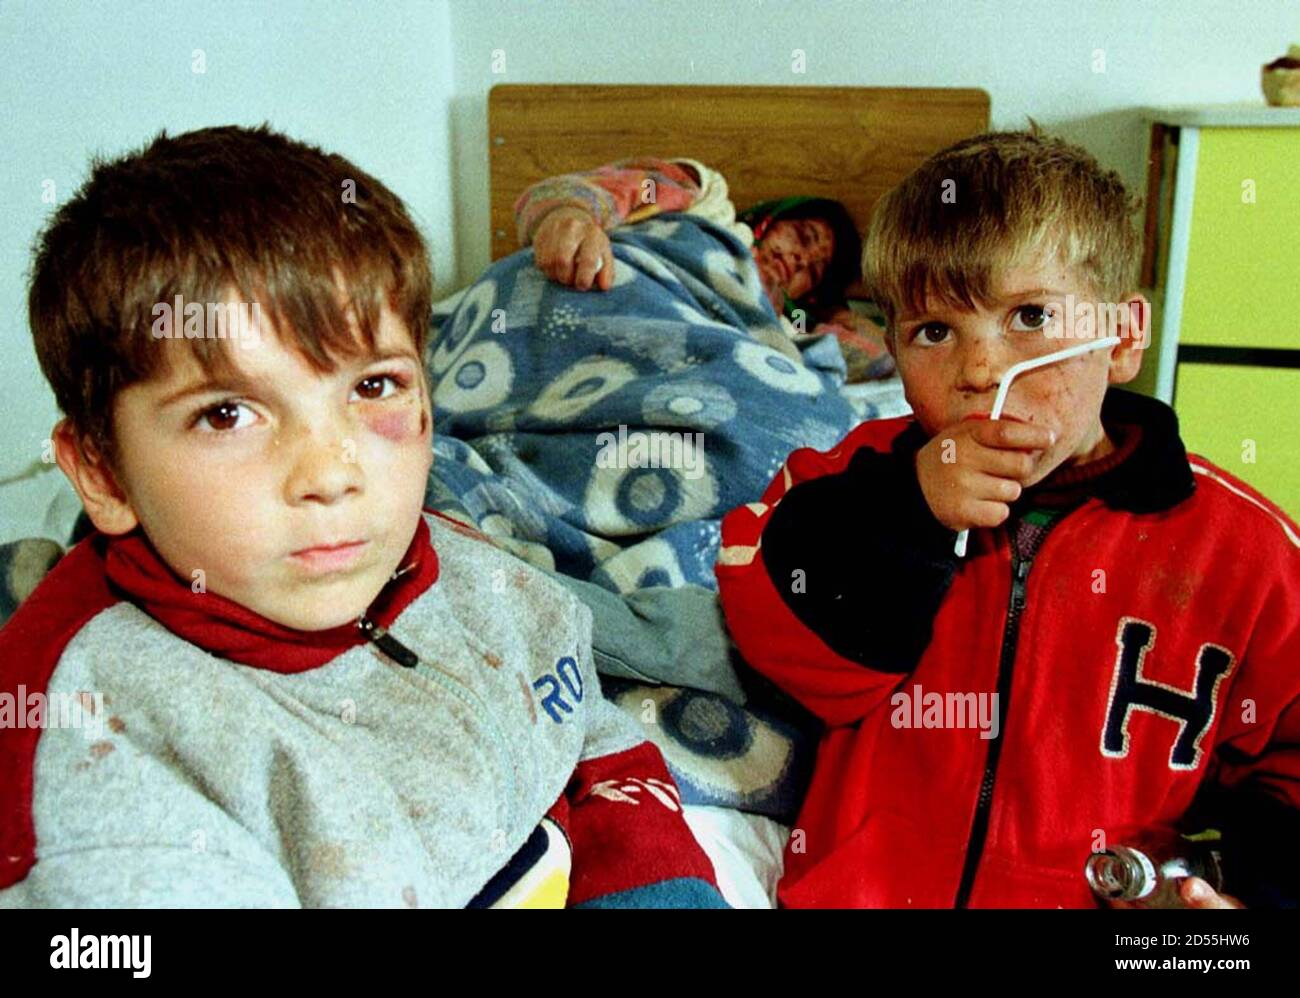 YUGOSLAVIA-KOSOVO-ALBANIA-REFUGEES:KUKES,ALBANIA,1APR99-Ethnic Albanian refugees from the village of Damnjane in Serbia's province of Kosovo, Yllka, 6, (L) and her four year old brother Ylli (R) sit at the bedside of their mother Besa Guci in Kukes hospital, Northern Albania, March 31. The family were injured by Serb granade schrapnel before they were expelled into Albania.  NSO/FMS Stock Photo